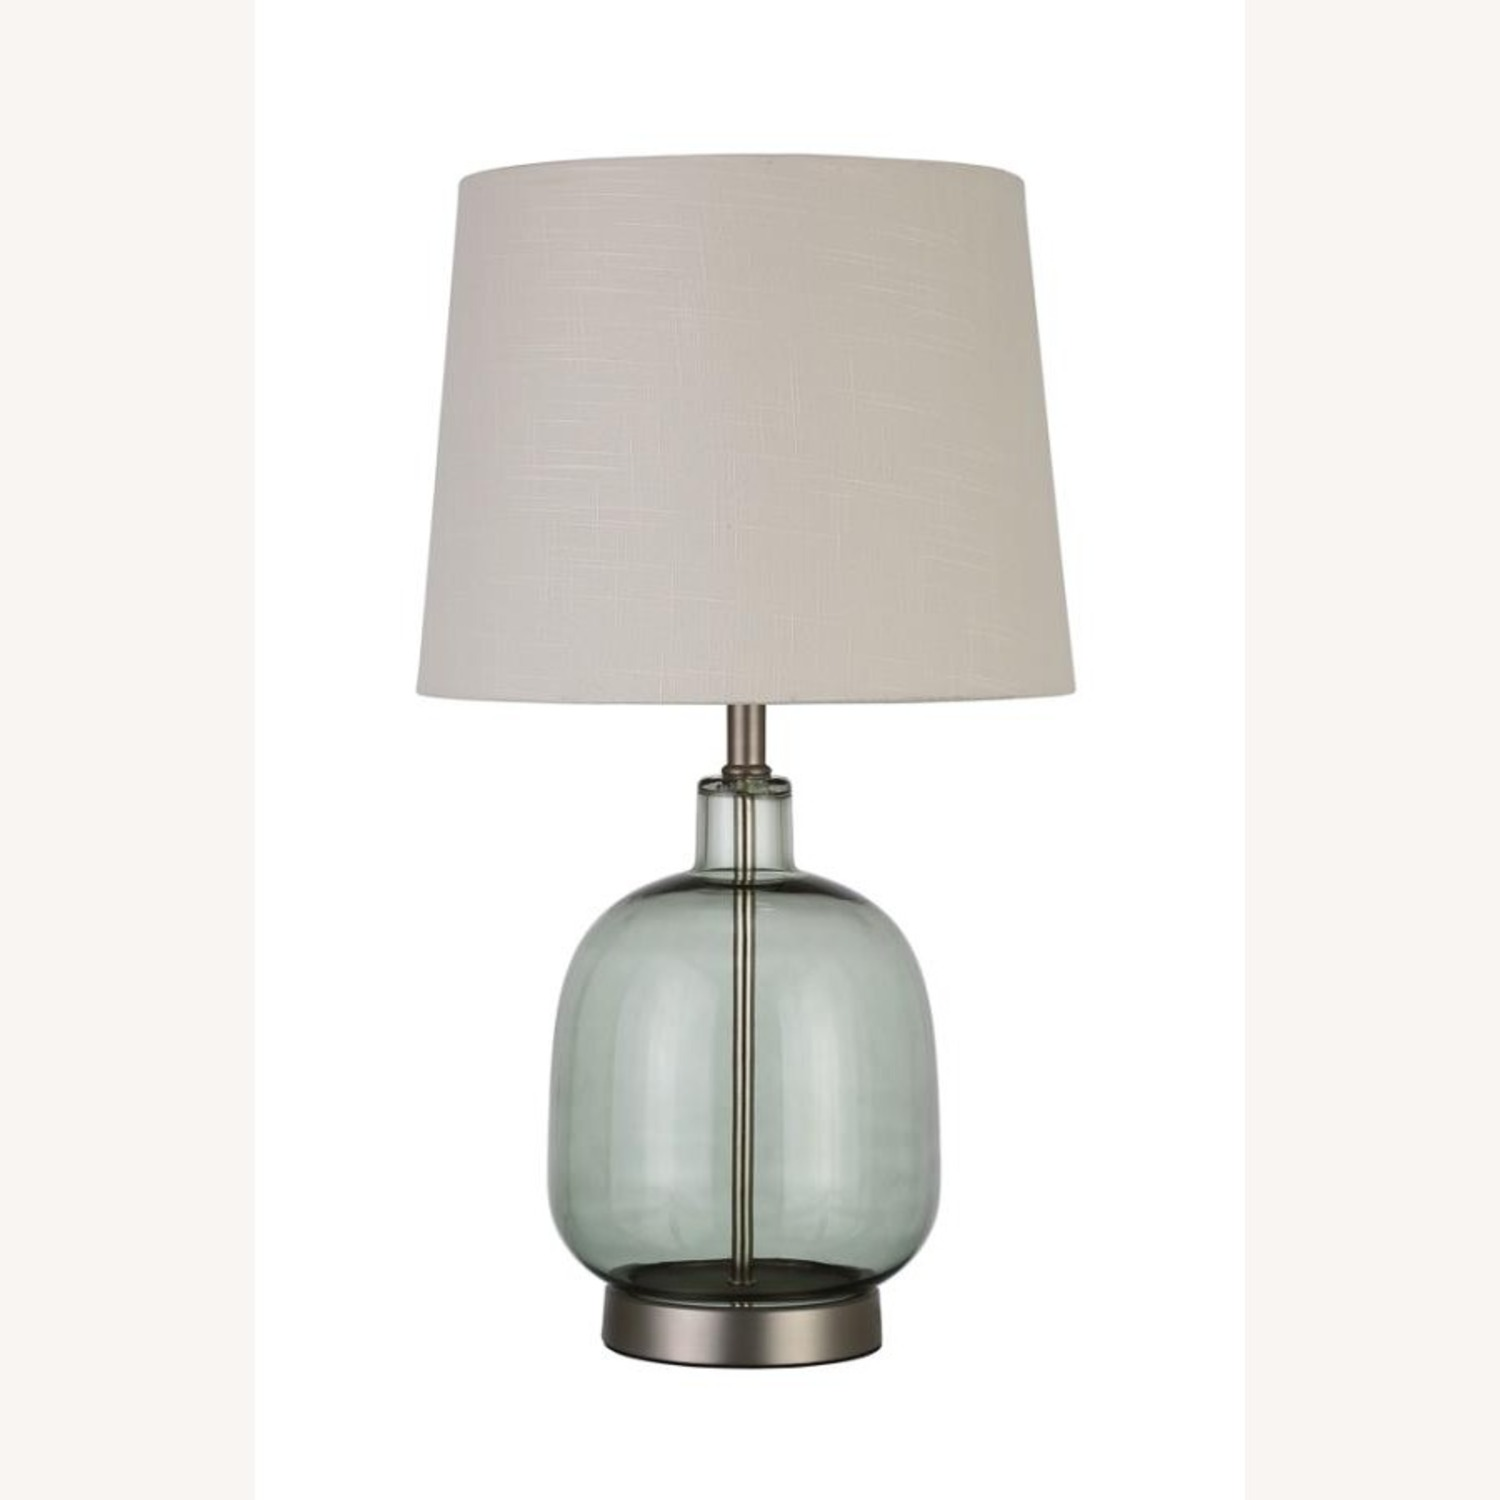 Table Lamp In Transparent Green Glass Body - image-0